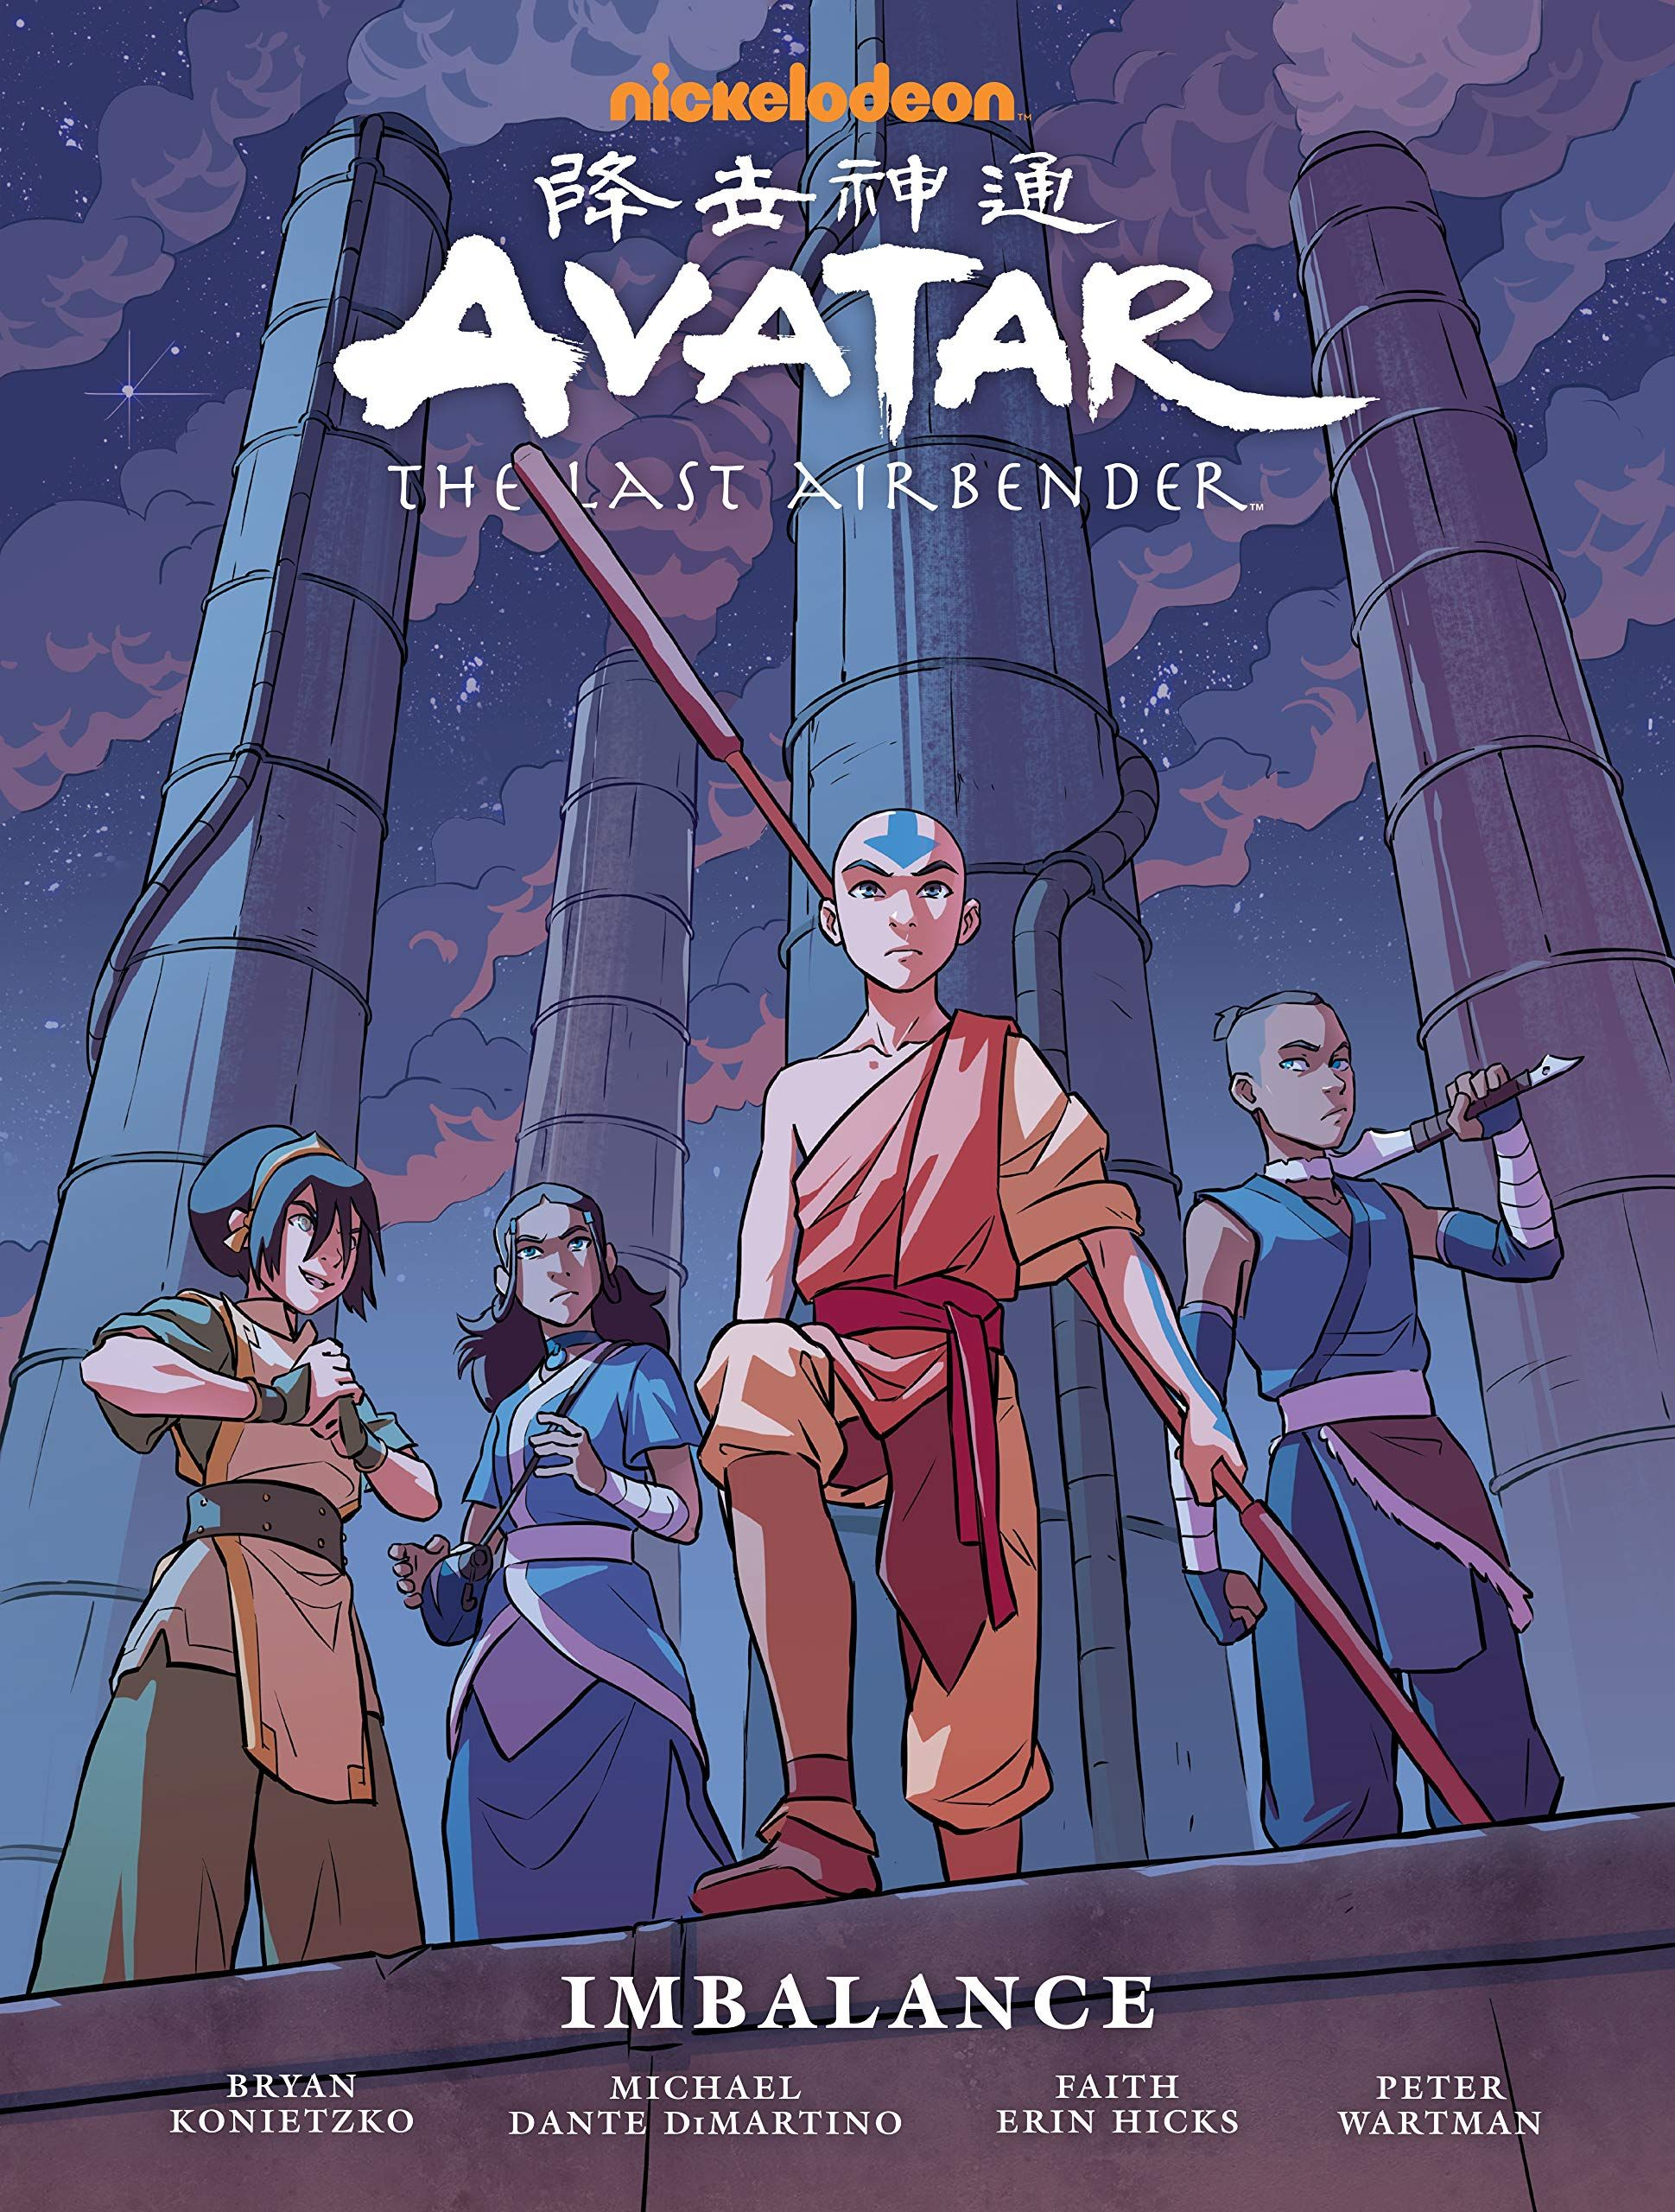 Trending Avatar The Last Airbender Graphic Novels In 2020 Avatar The Last Airbender The Last Airbender Avatar The Last Airbender Art